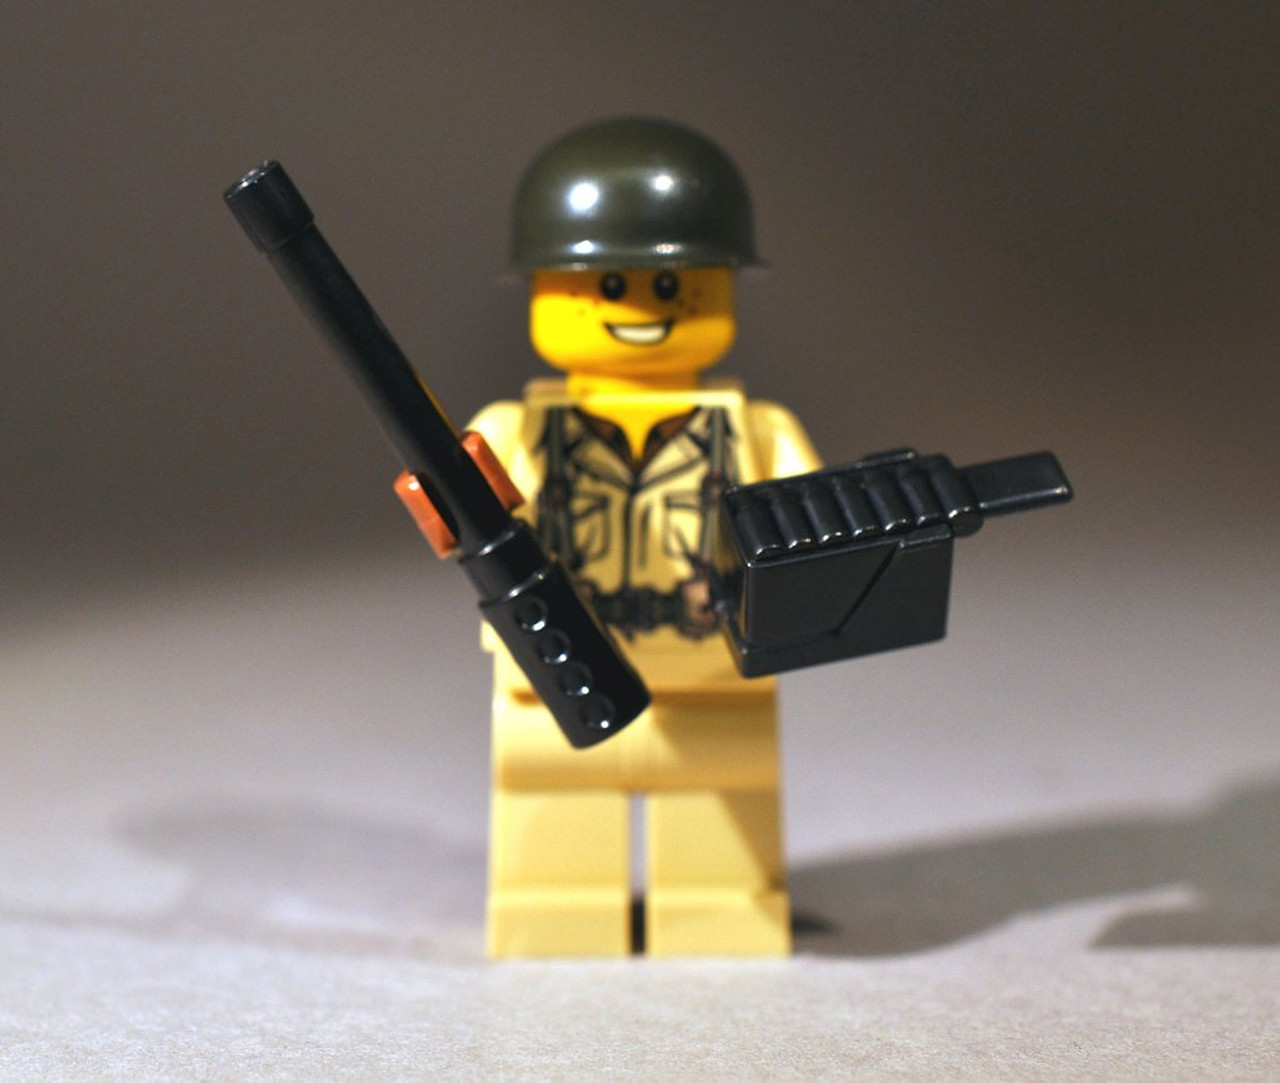 Extra components sold separately. Minifig not included!